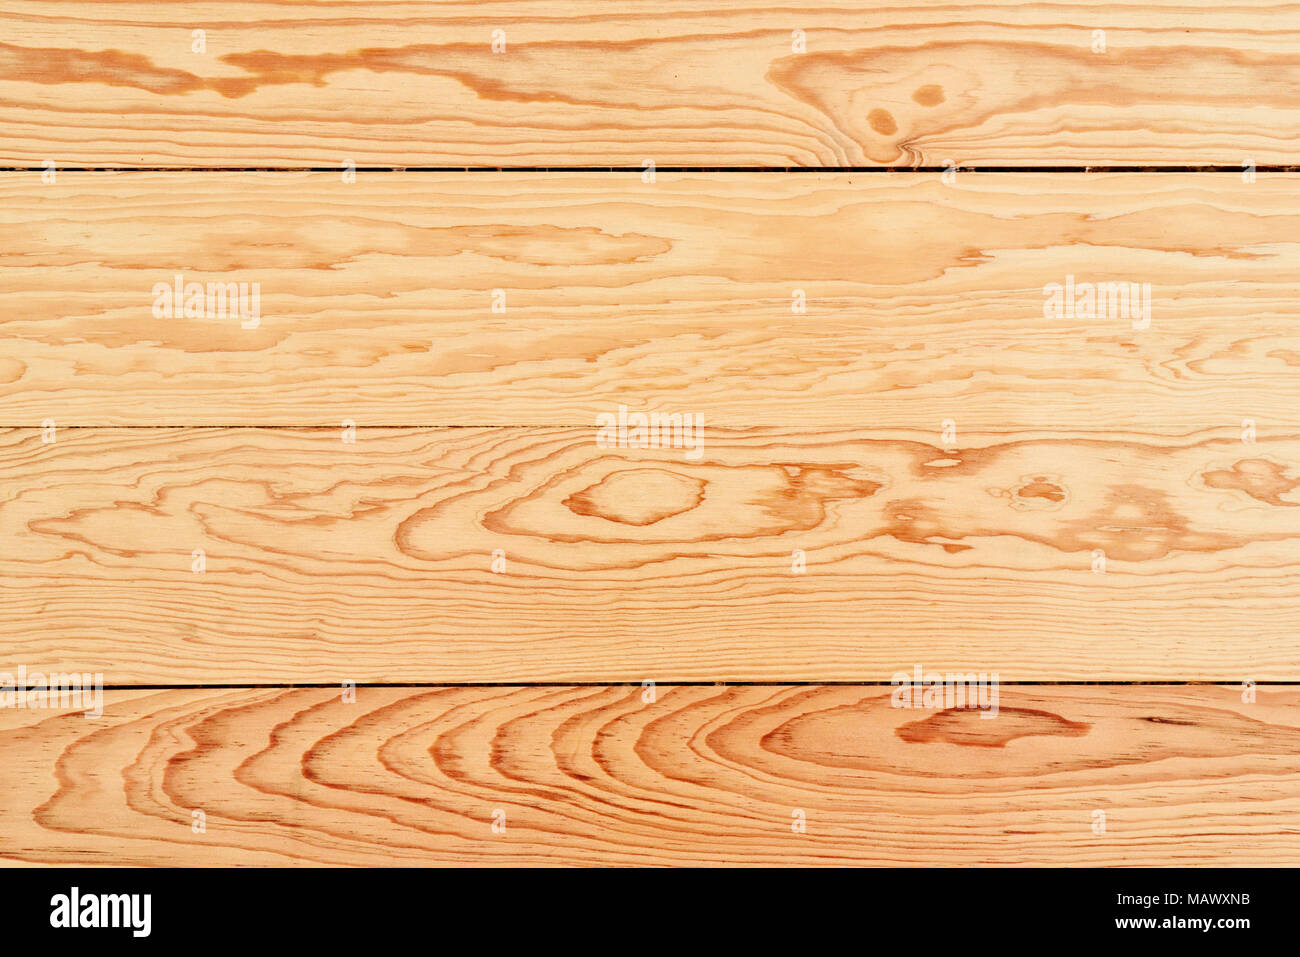 Wooden floor or wood planks background. Light wood background with copy space, top view or high angle shot. - Stock Image